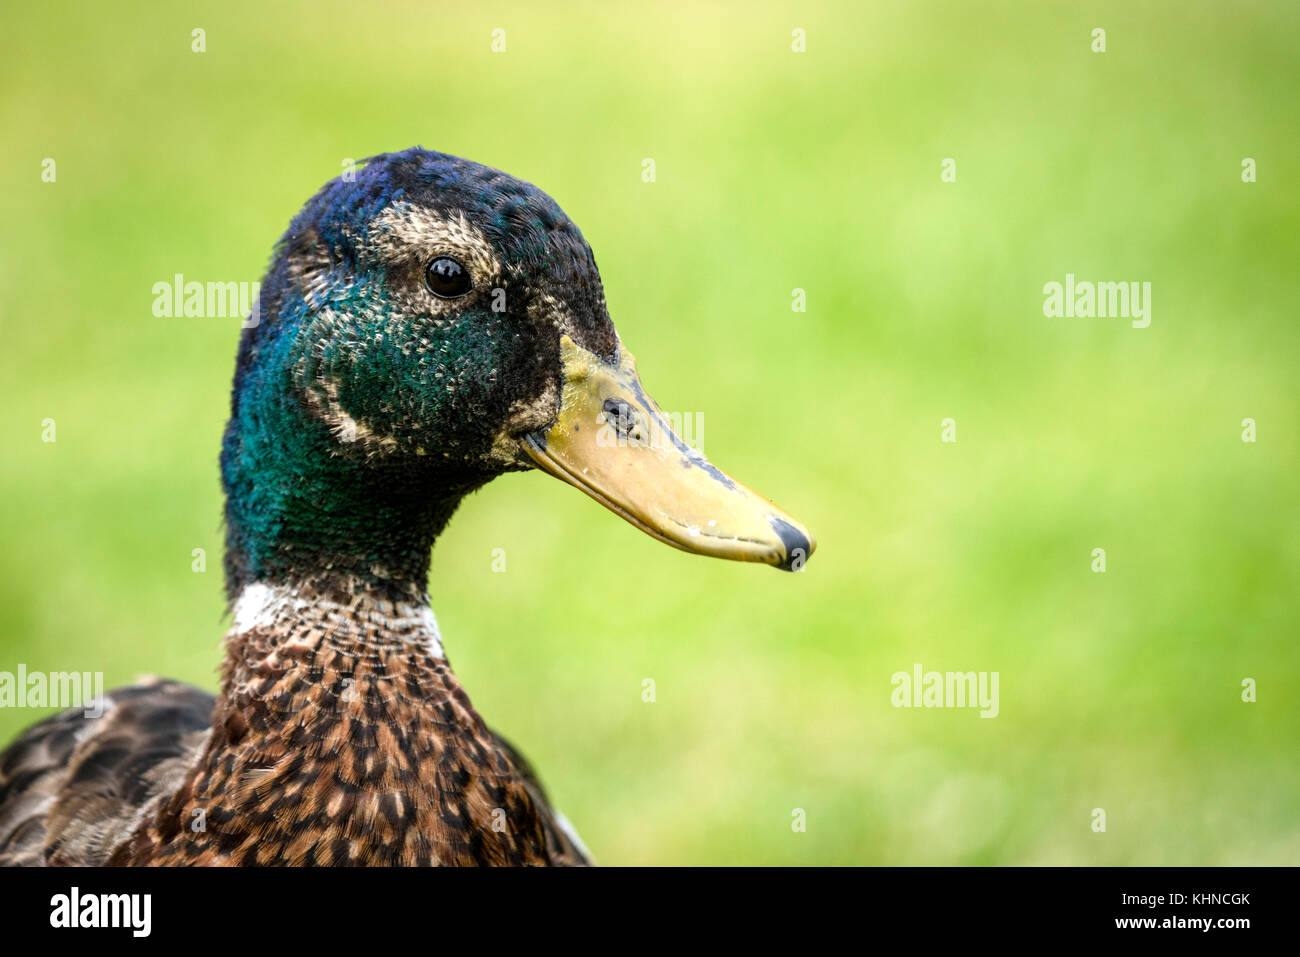 Duck close-up of the head standing out on a blurry green background in the summer - Stock Image